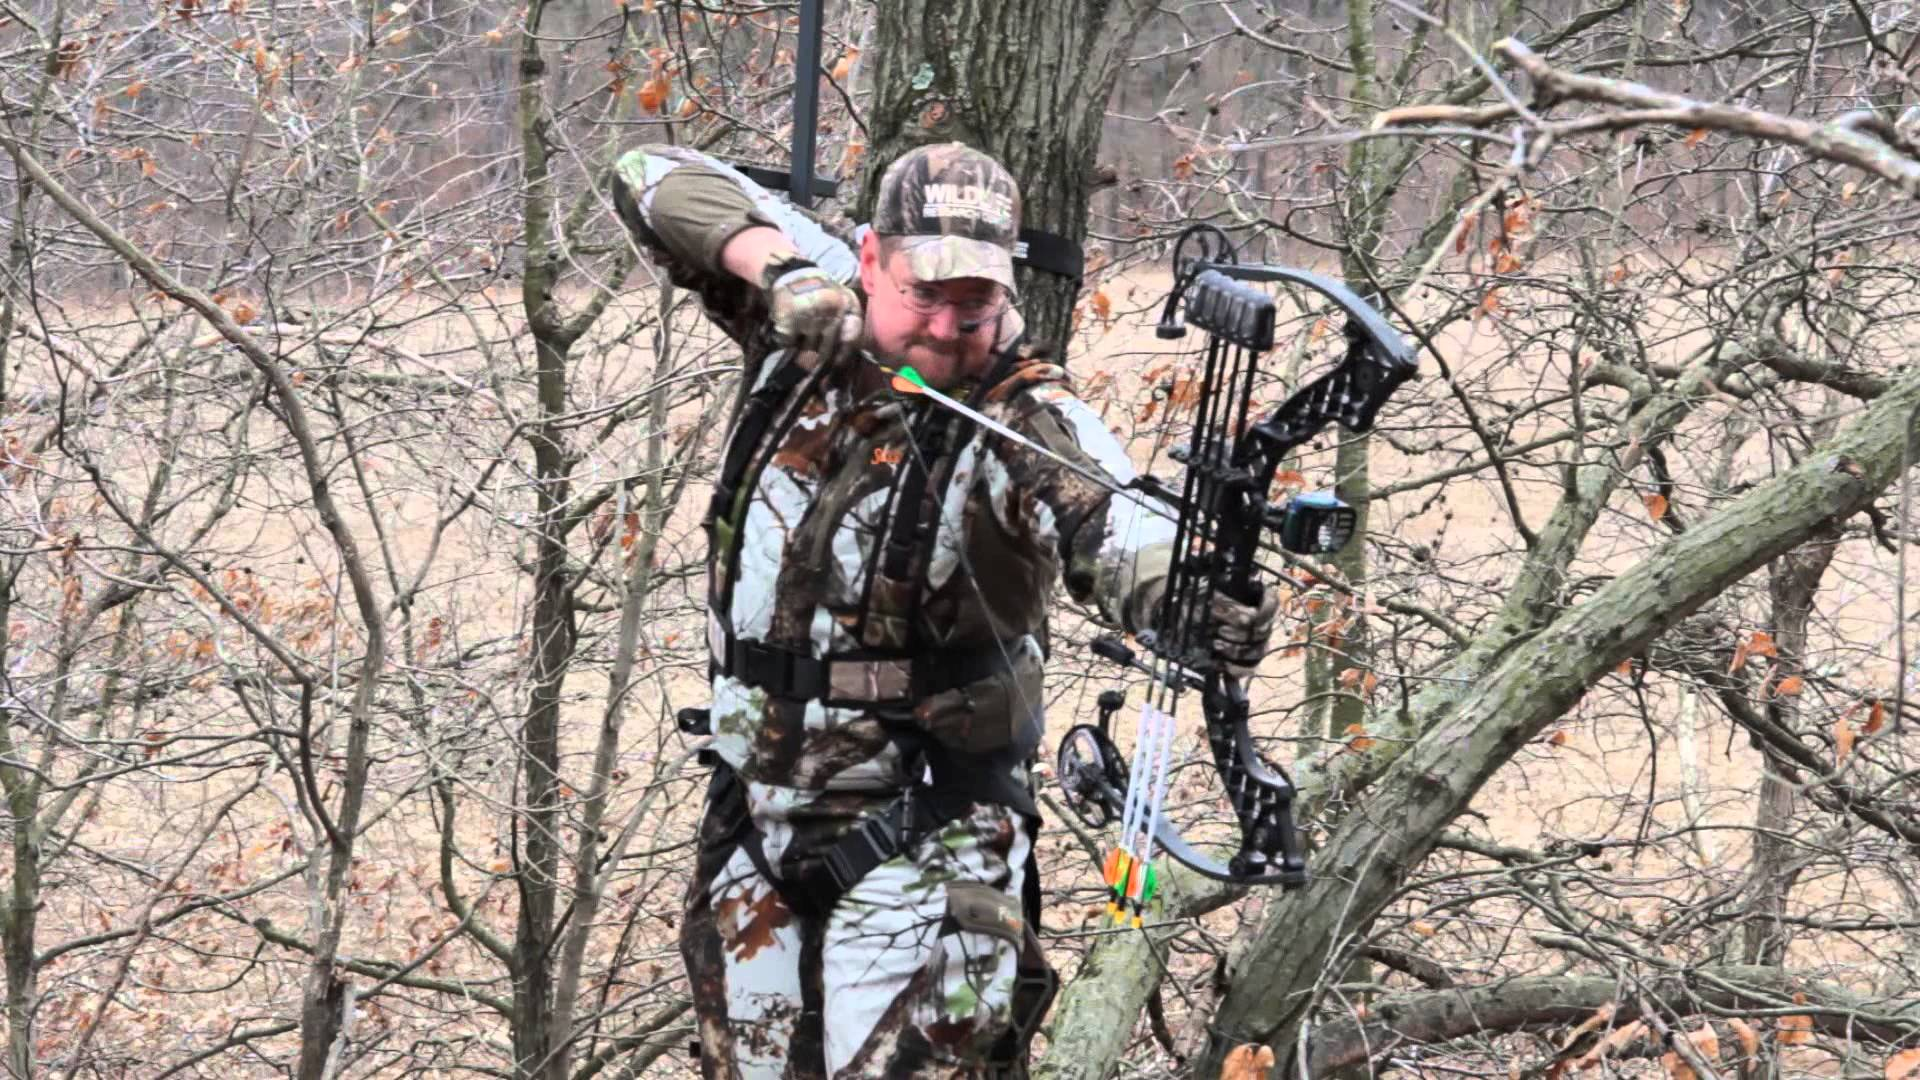 Deer Hunting : Deer Hunting Weapons And Safety